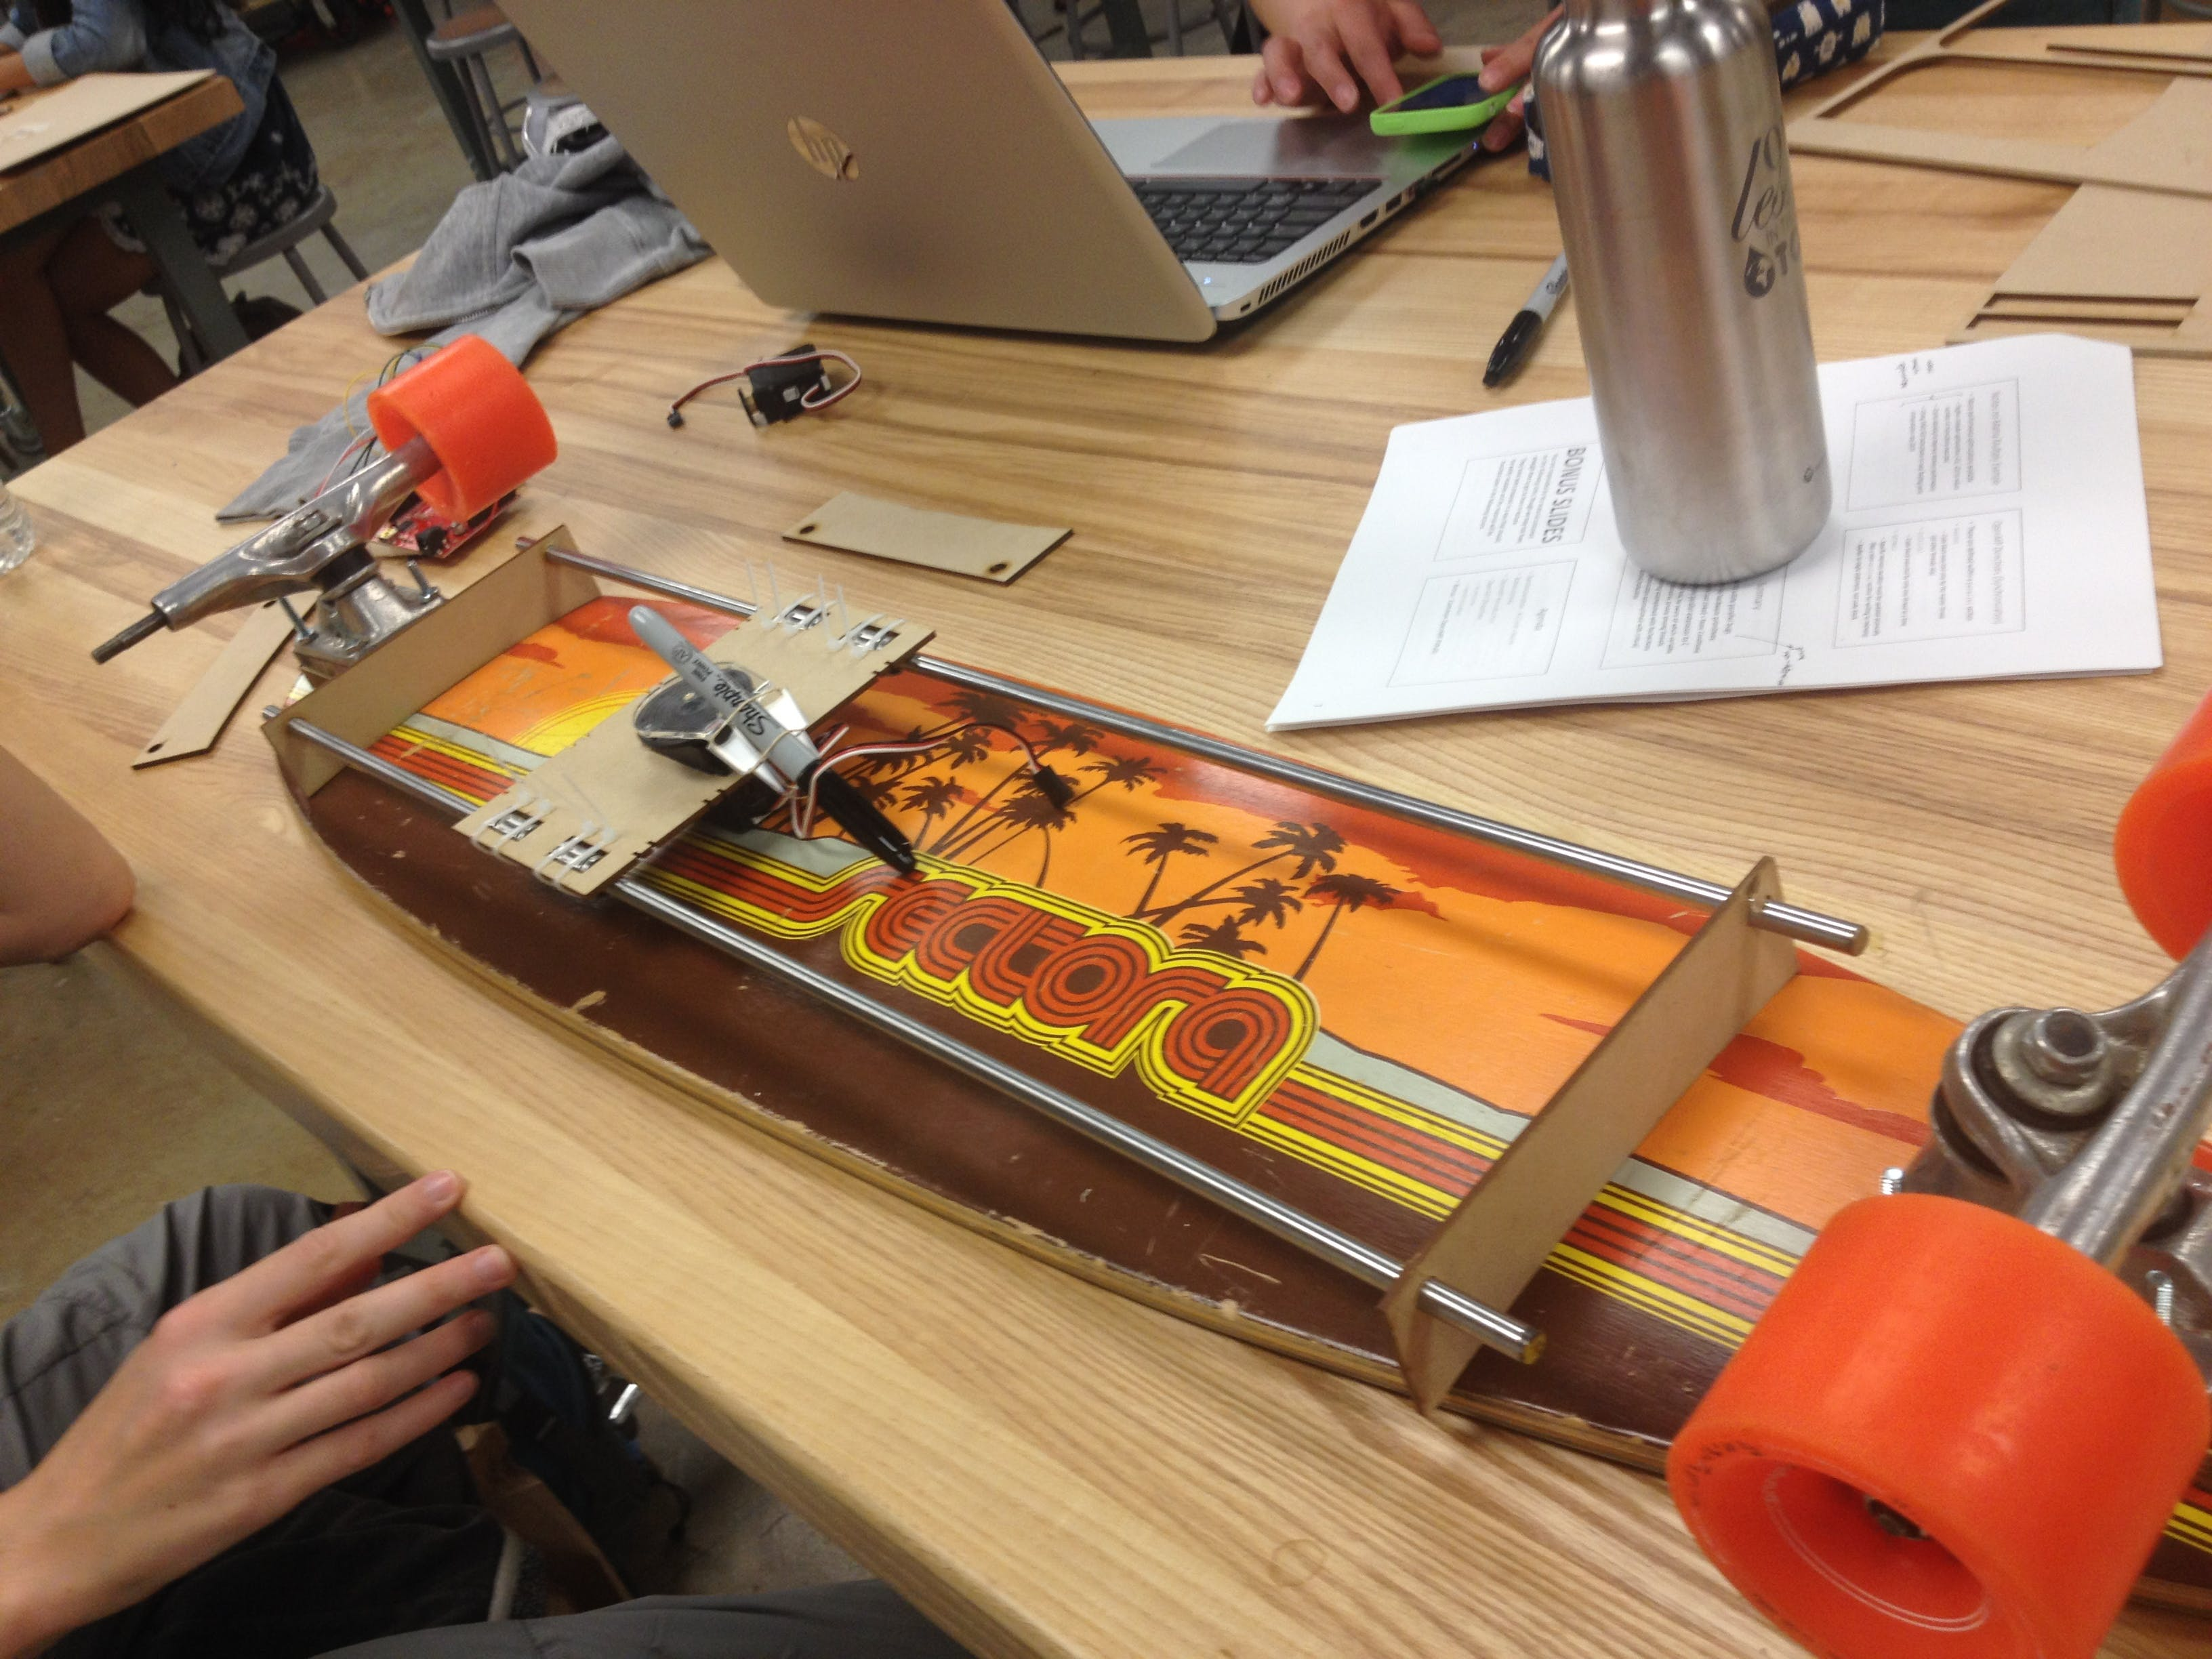 XY-plotter built using wood, acrylic bearings, steel rods, rubber bands, and servos